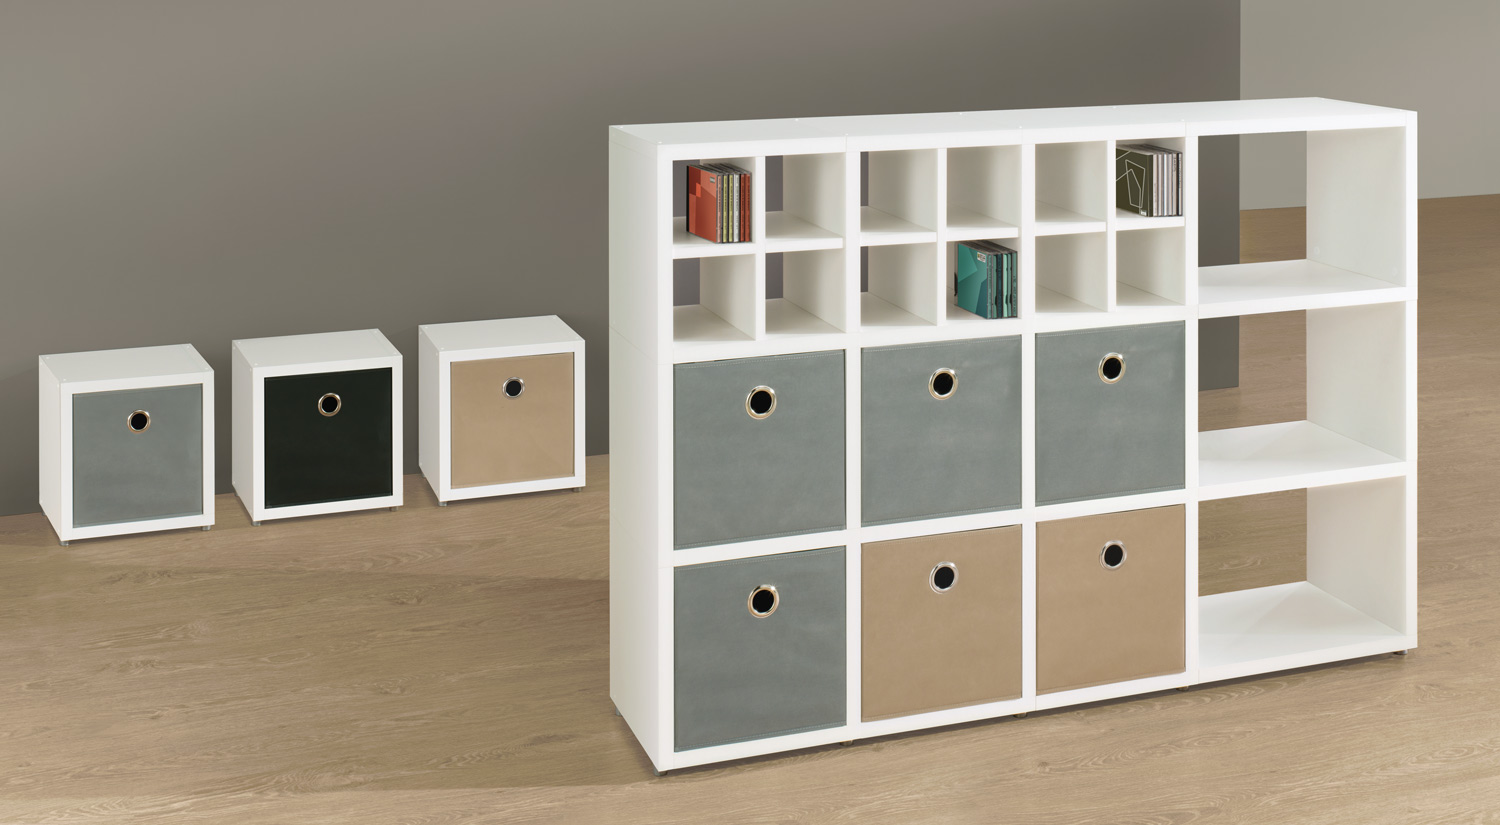 Storage box - SOFTBOX storage boxes in gray, light brown for the BOON shelving system